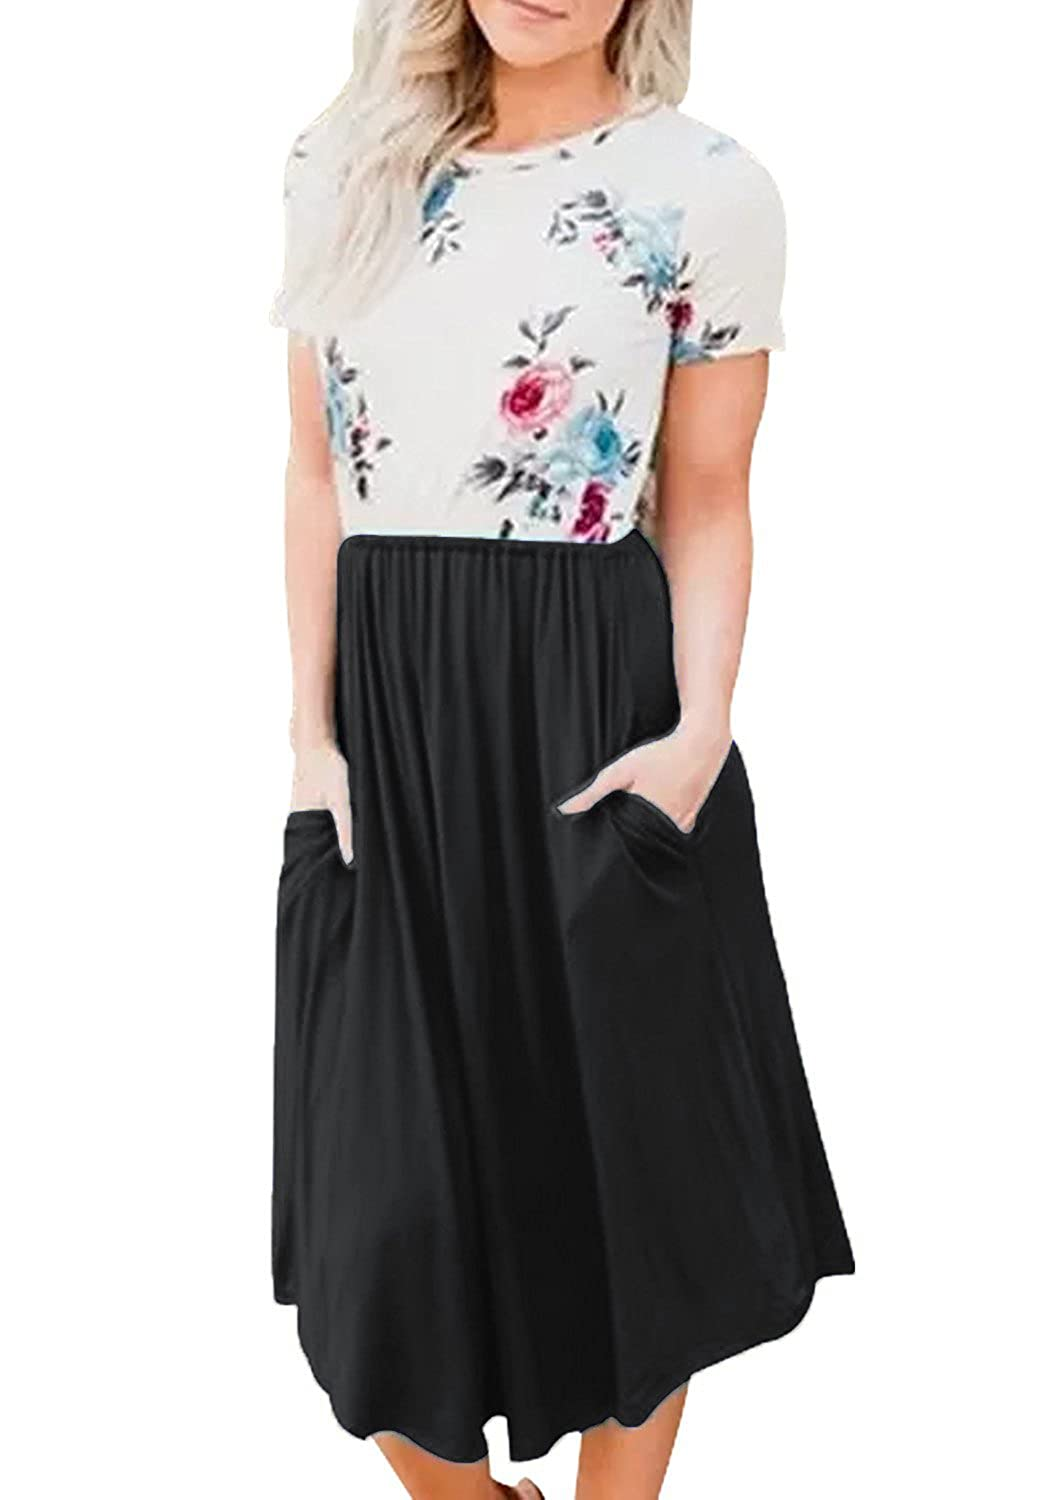 Black Yidarton Women Summer Short Sleeve Floral Print Patchwork Casual Pleated Midi Dress with Pockets